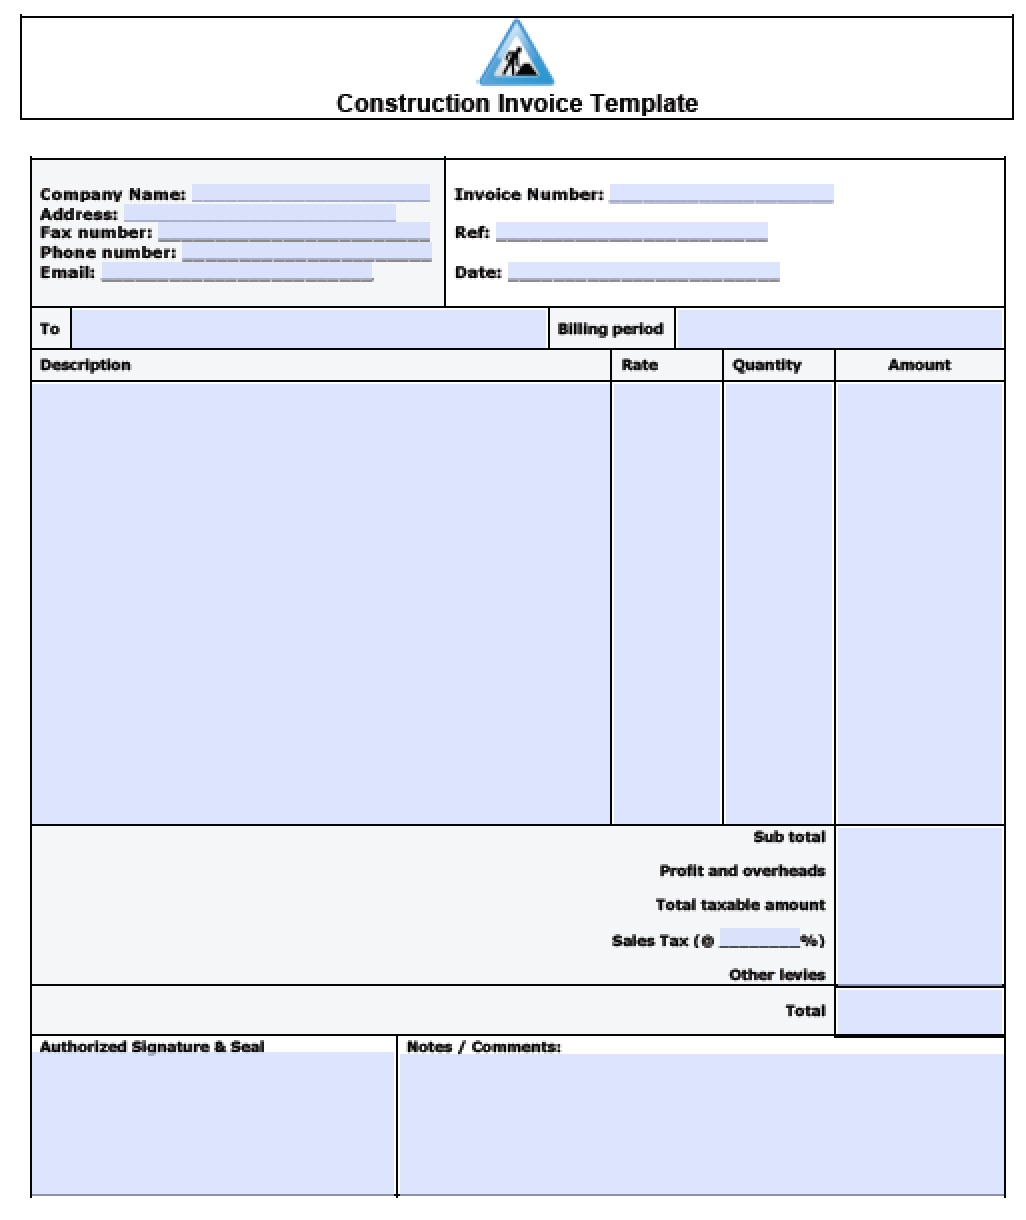 Free Construction Invoice Template | Excel | PDF | Word (.doc)